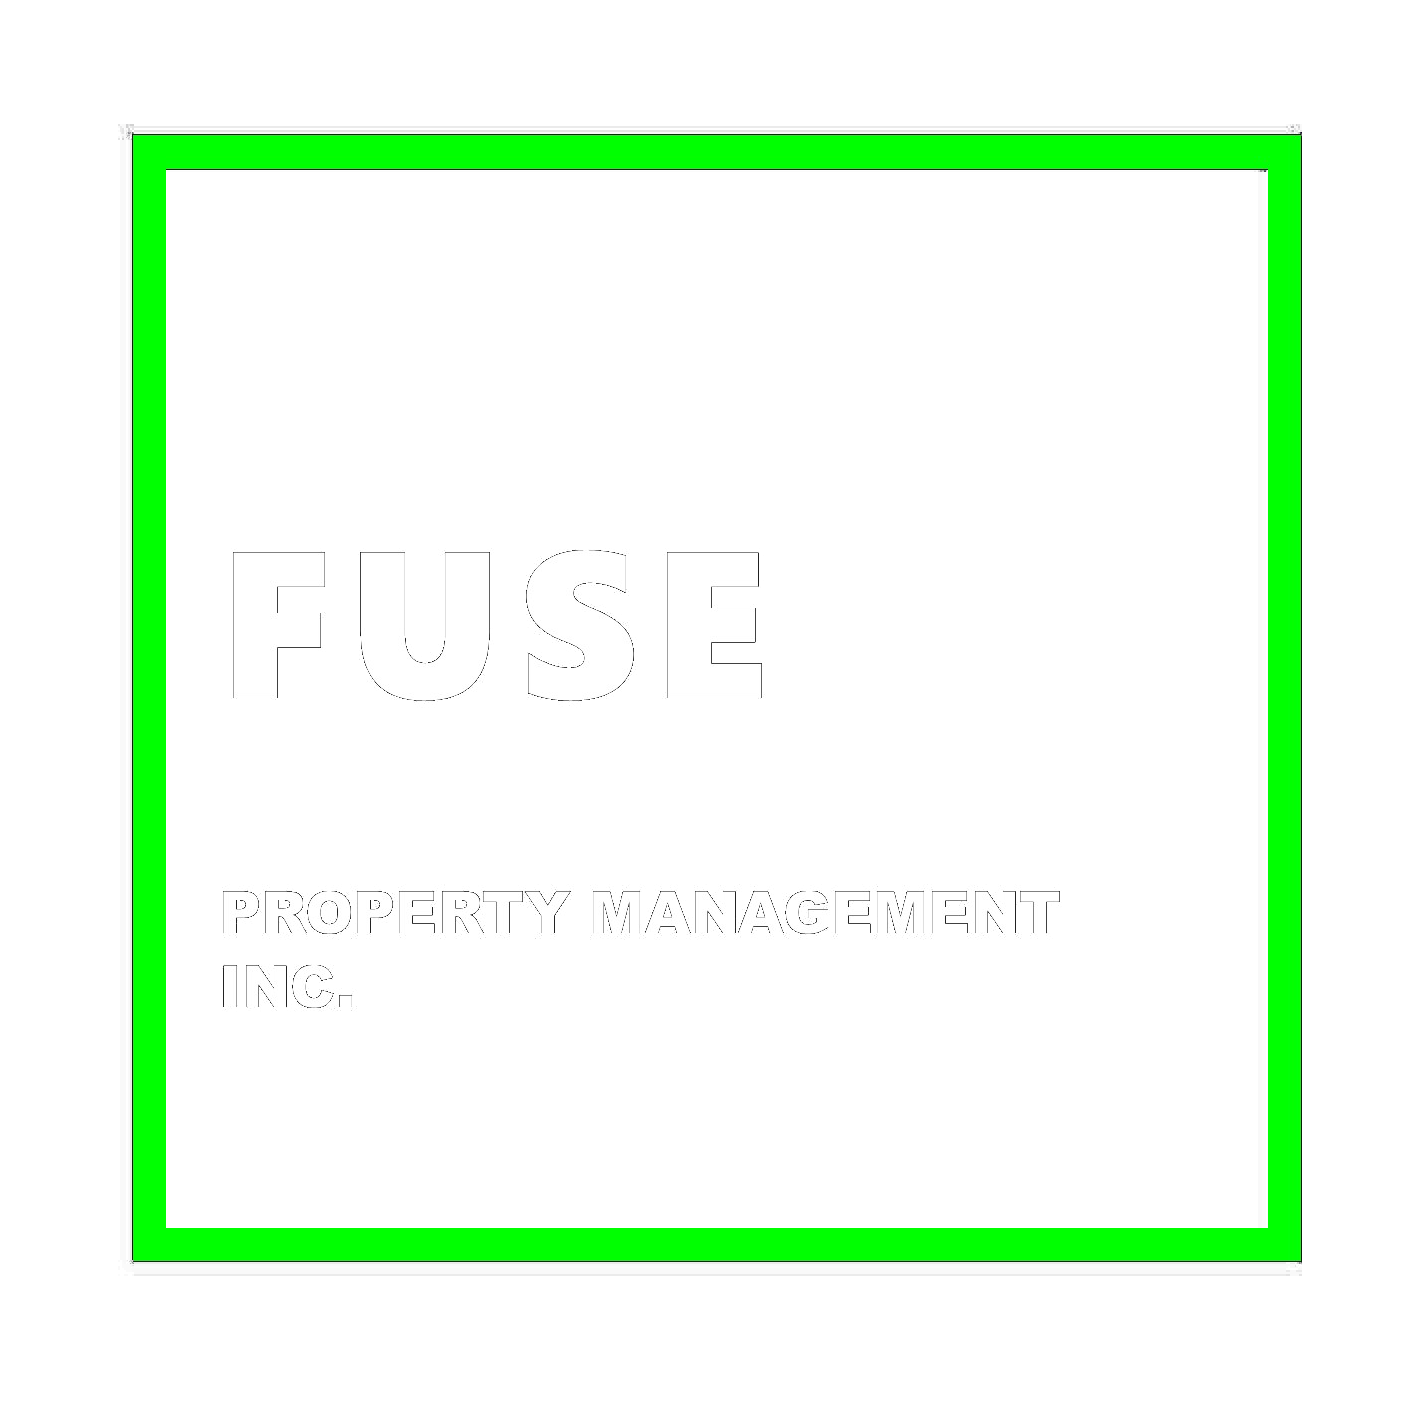 Fuse Property Management